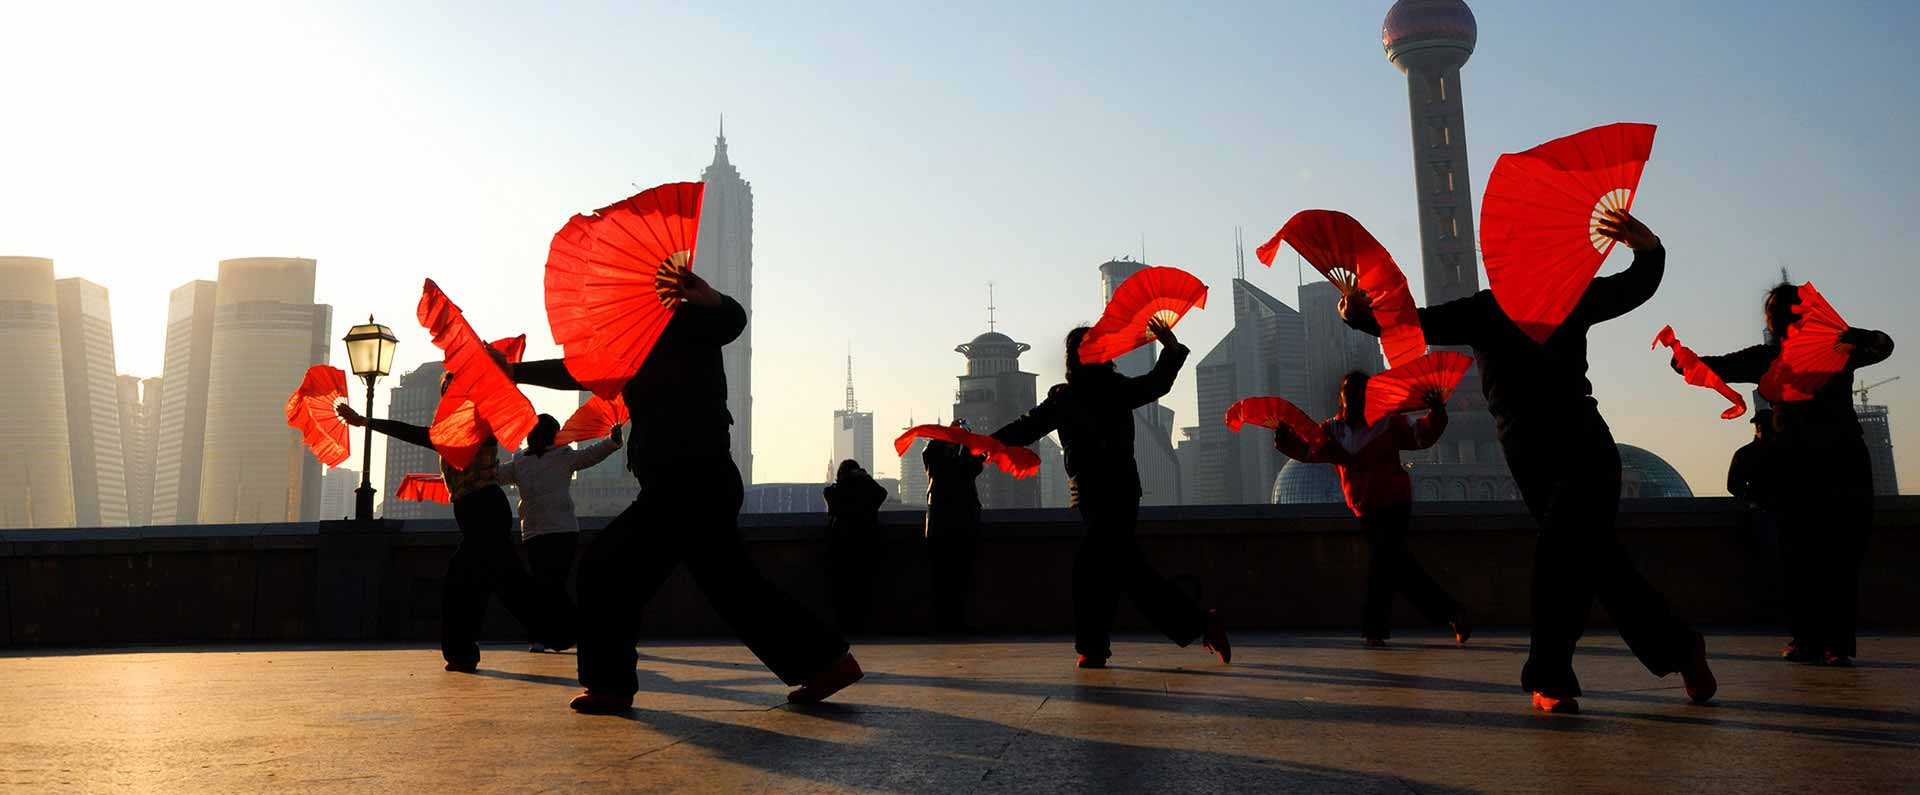 generic stock image 52465007 Traditional Chinese dance with fans topbig